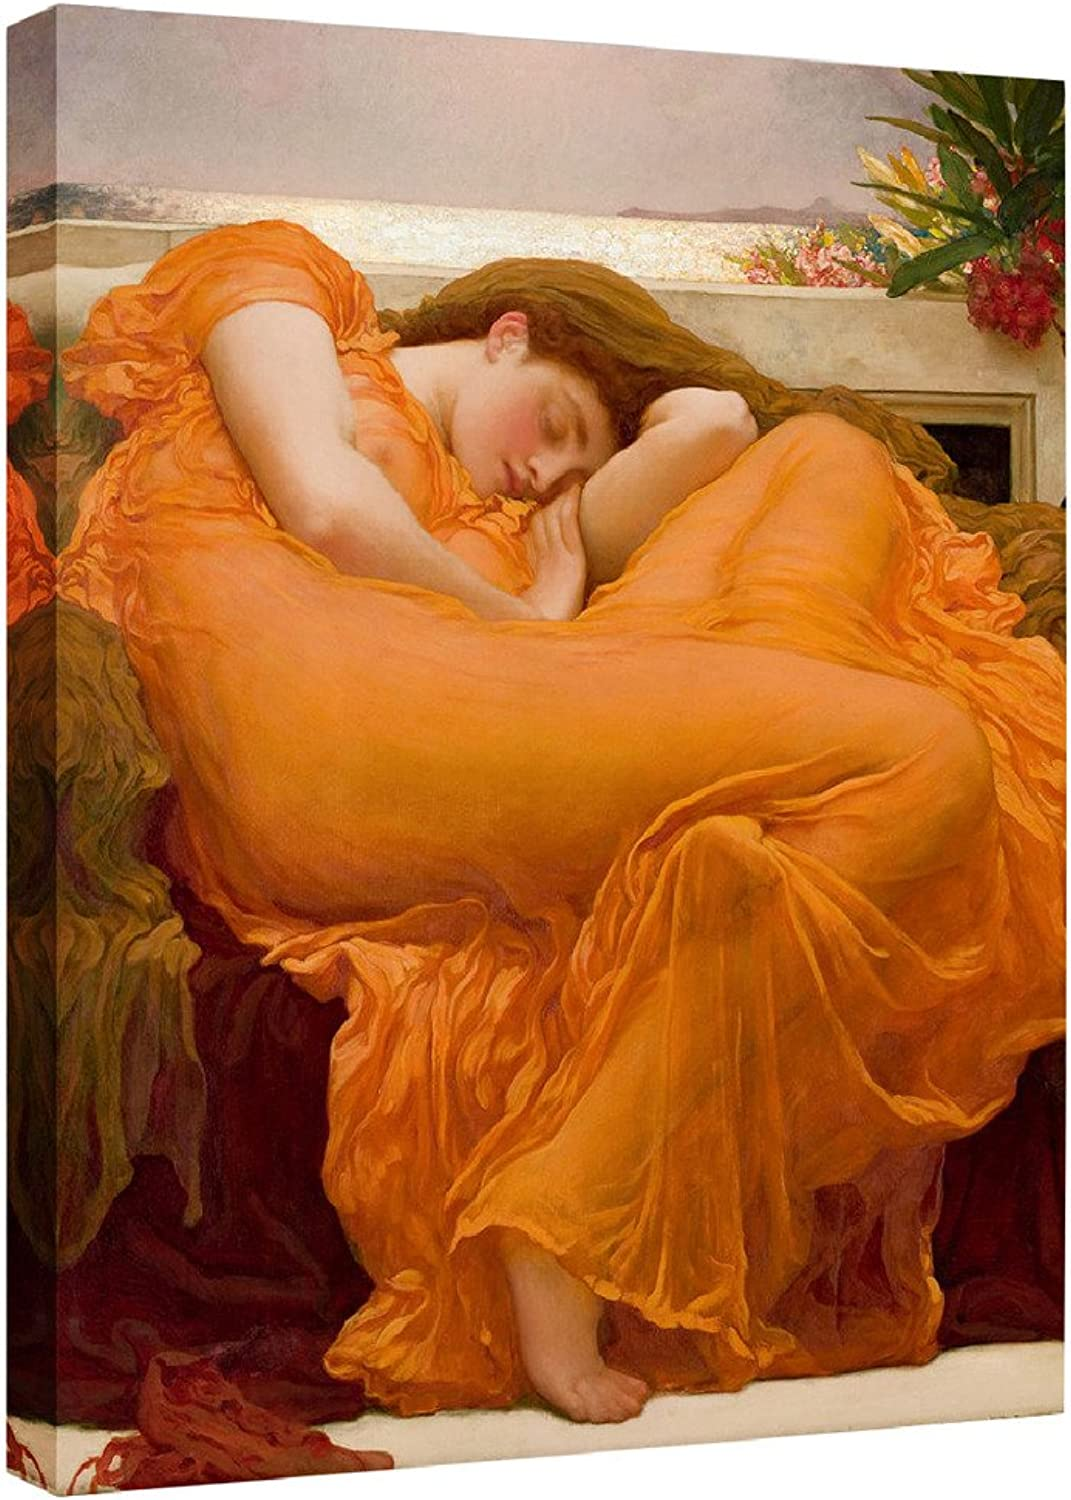 Eliteart-Flaming June By Frederic Leighton Composition Oil Painting Reproduction Giclee Wall Art Canvas Prints